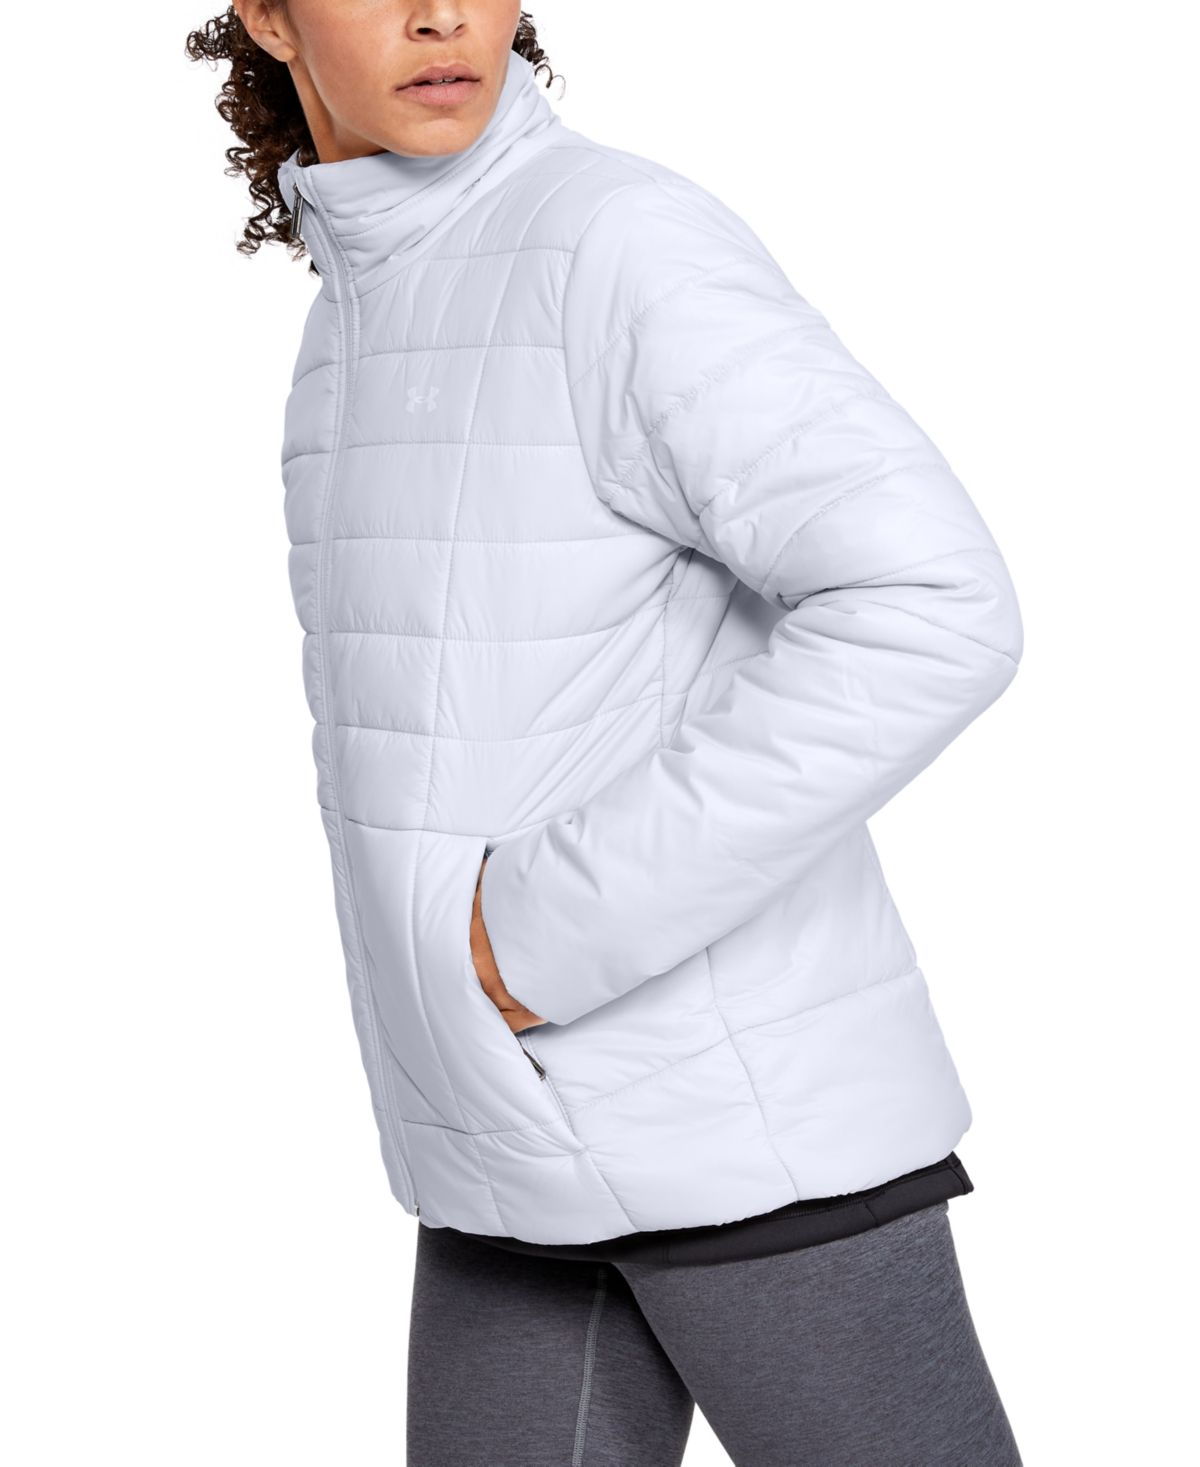 Photo of Underneath Armour Girls's Storm ColdGear® Insulated Jacket & Opinions – Jackets & Blazers – Girls – Macy's